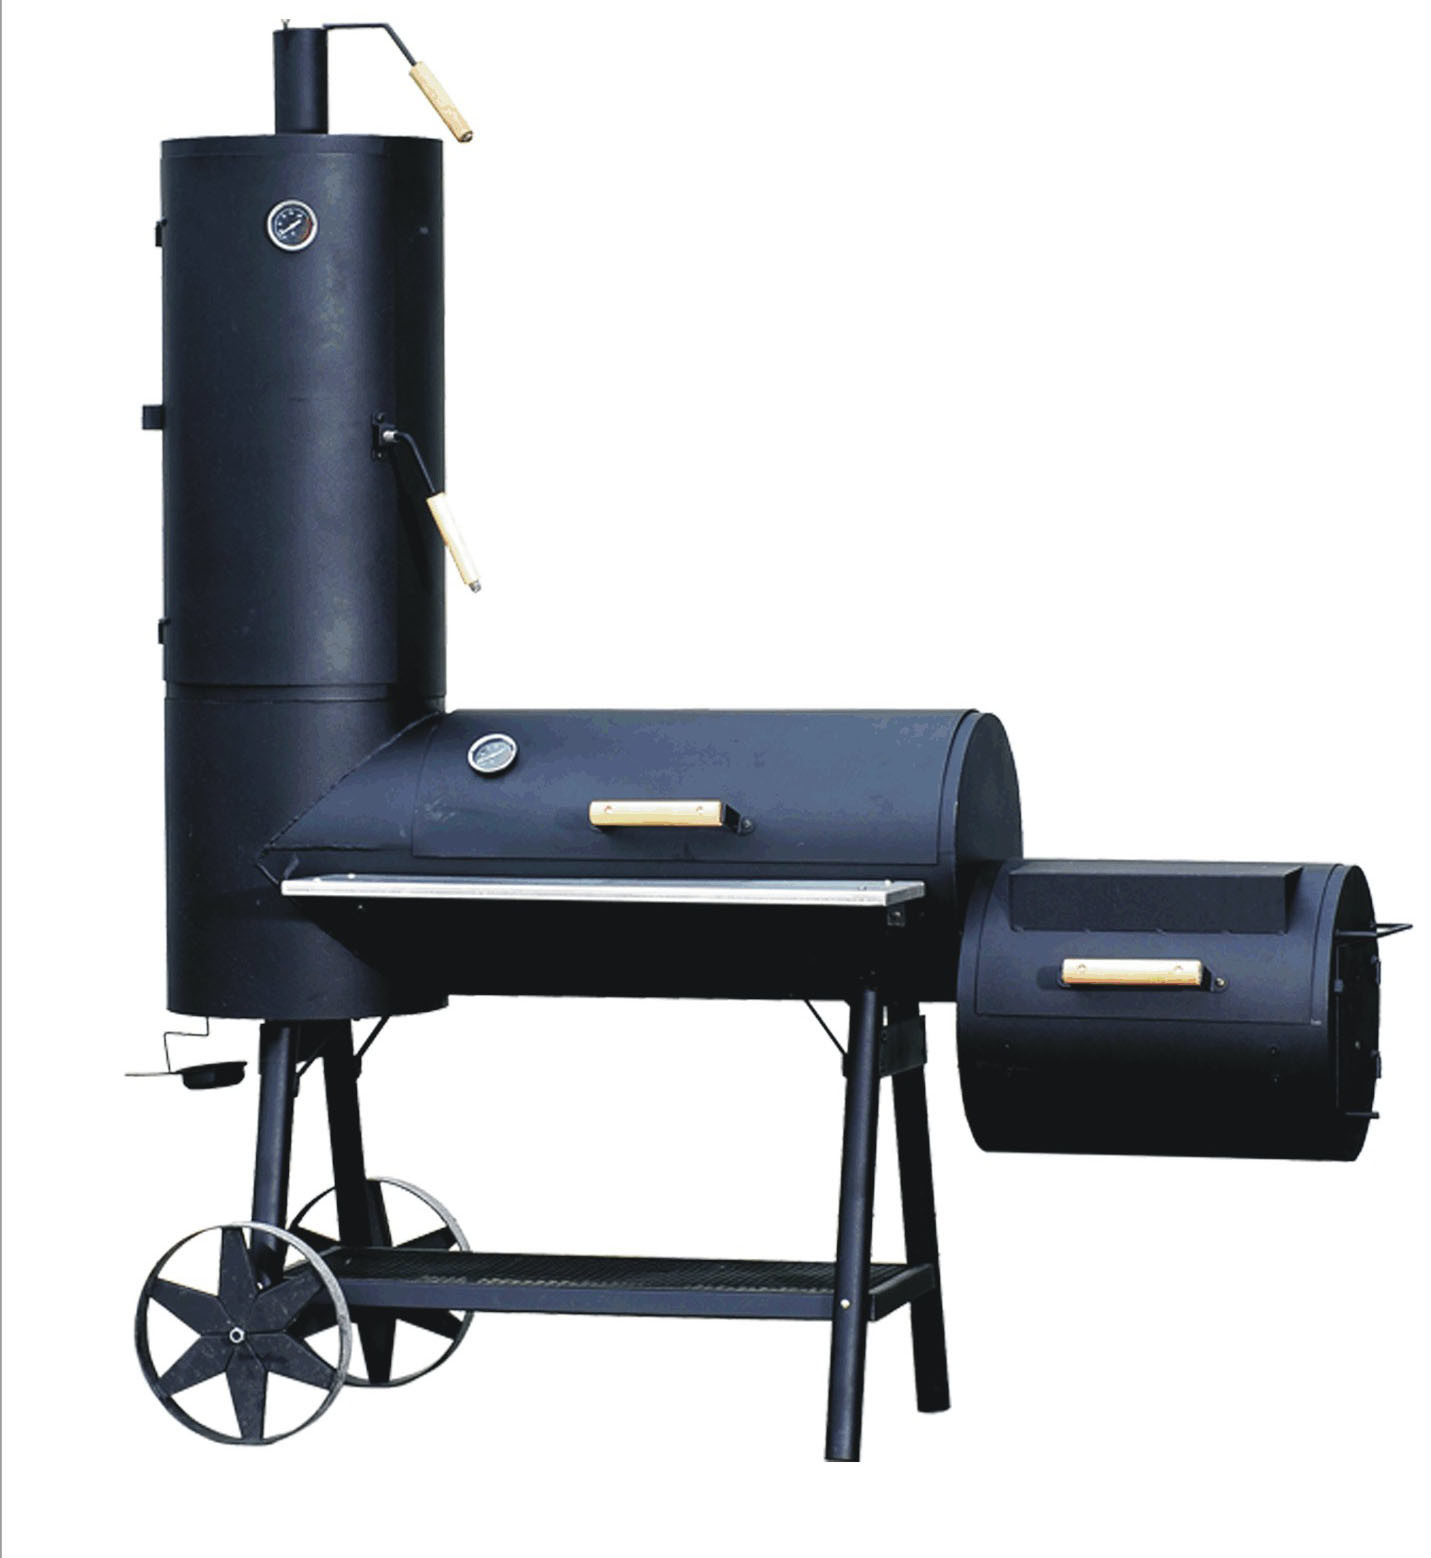 HOME: Hybrid Grills stainless barbecue pits, charcoal grills, gas